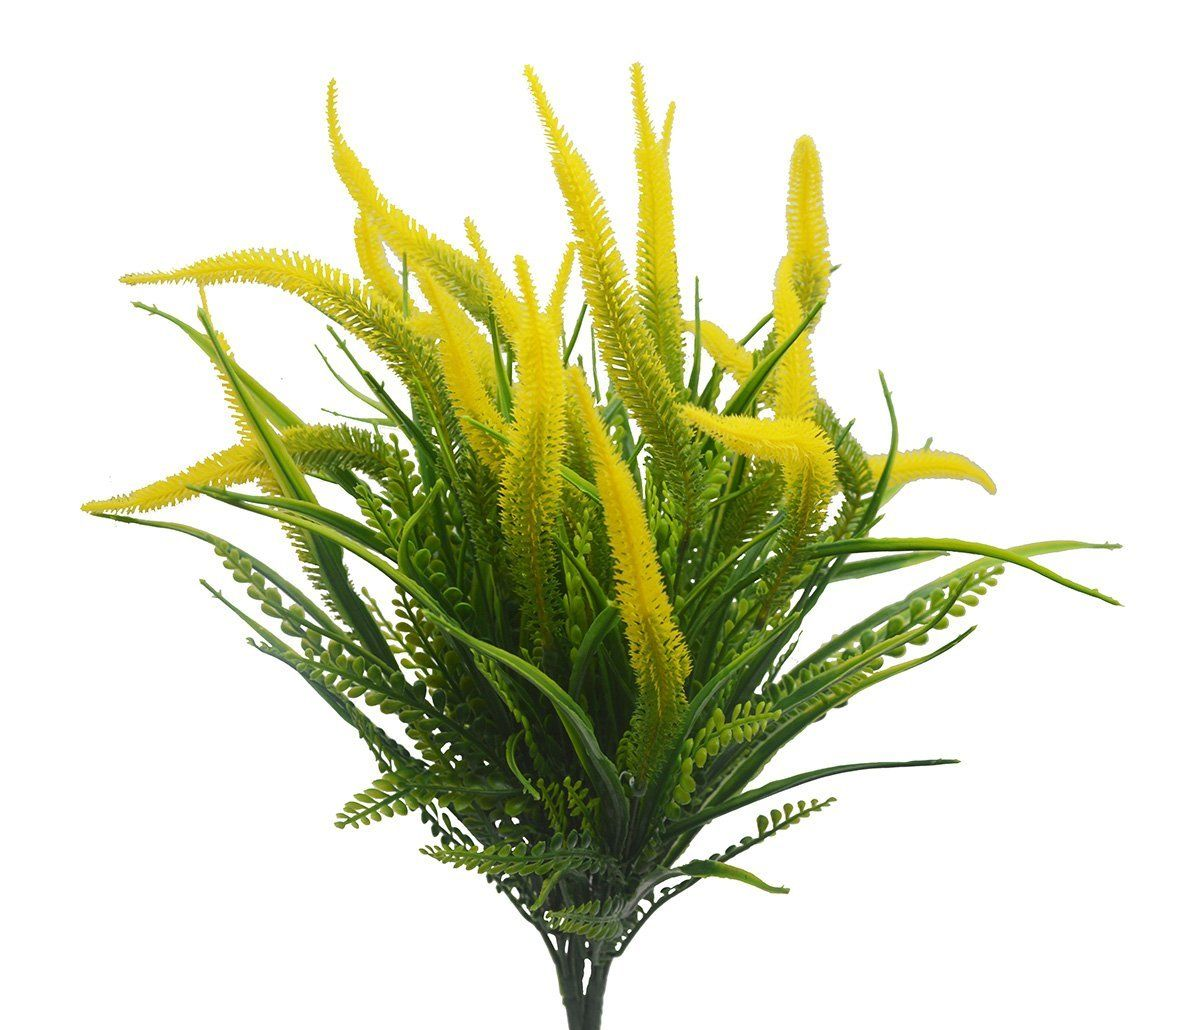 Wedding decorations outside house  Artificial Plants Flowers pcs Faux Plastic Setaria Shrubs